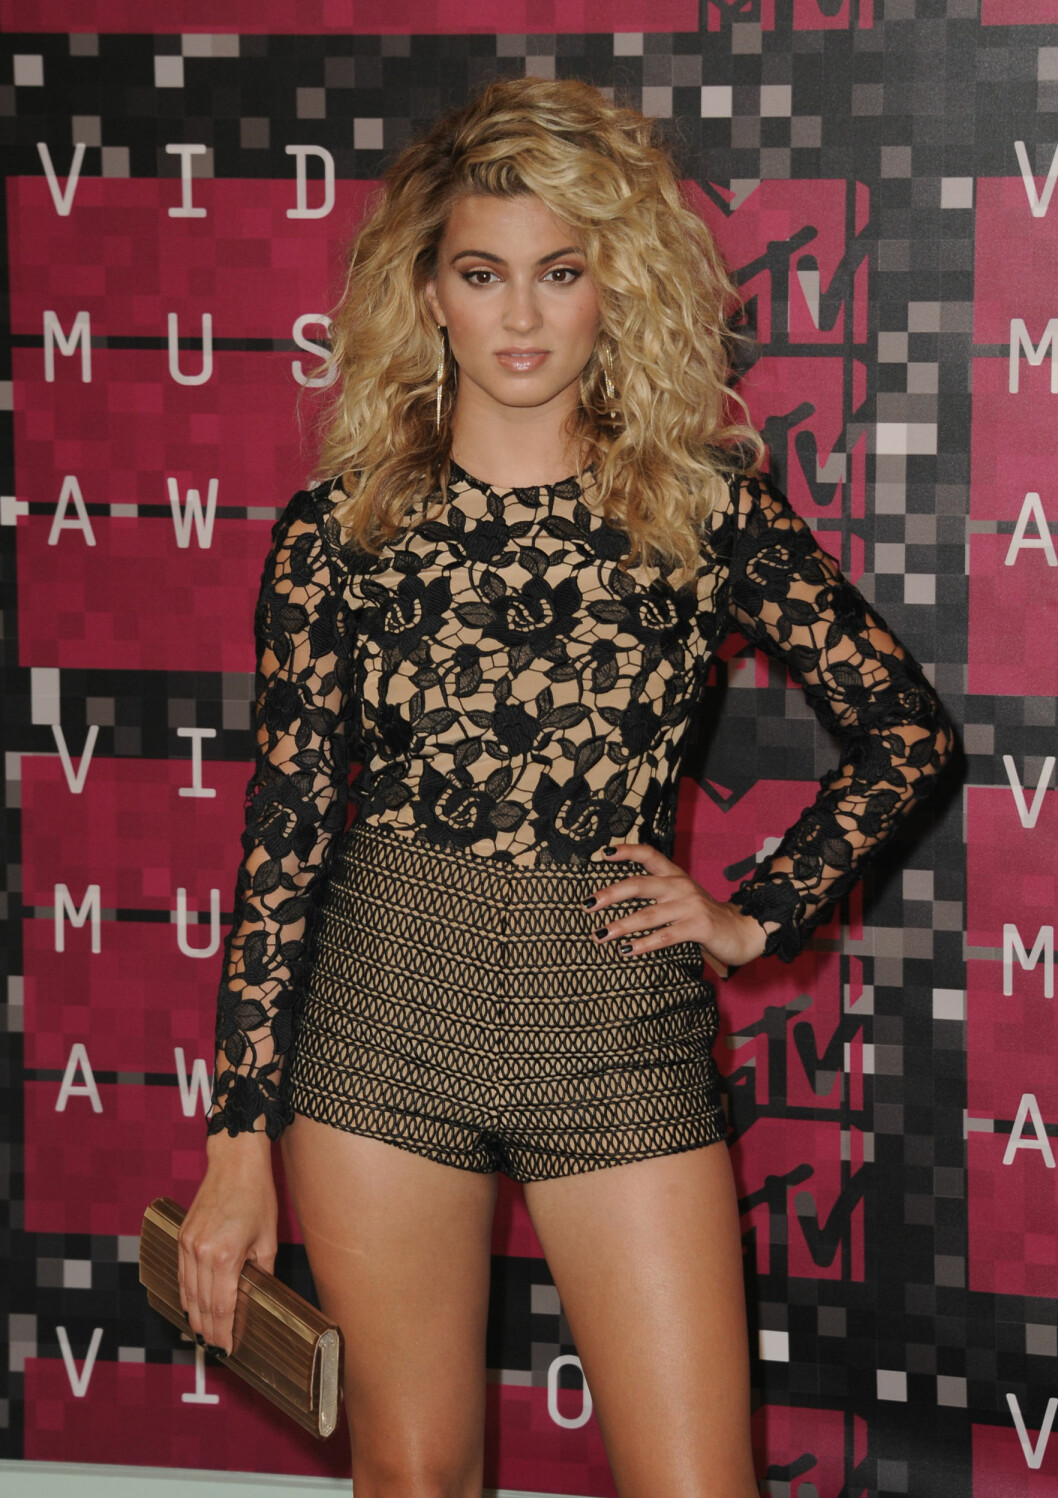 Tori Kelly (22) Foto: Zuma Press